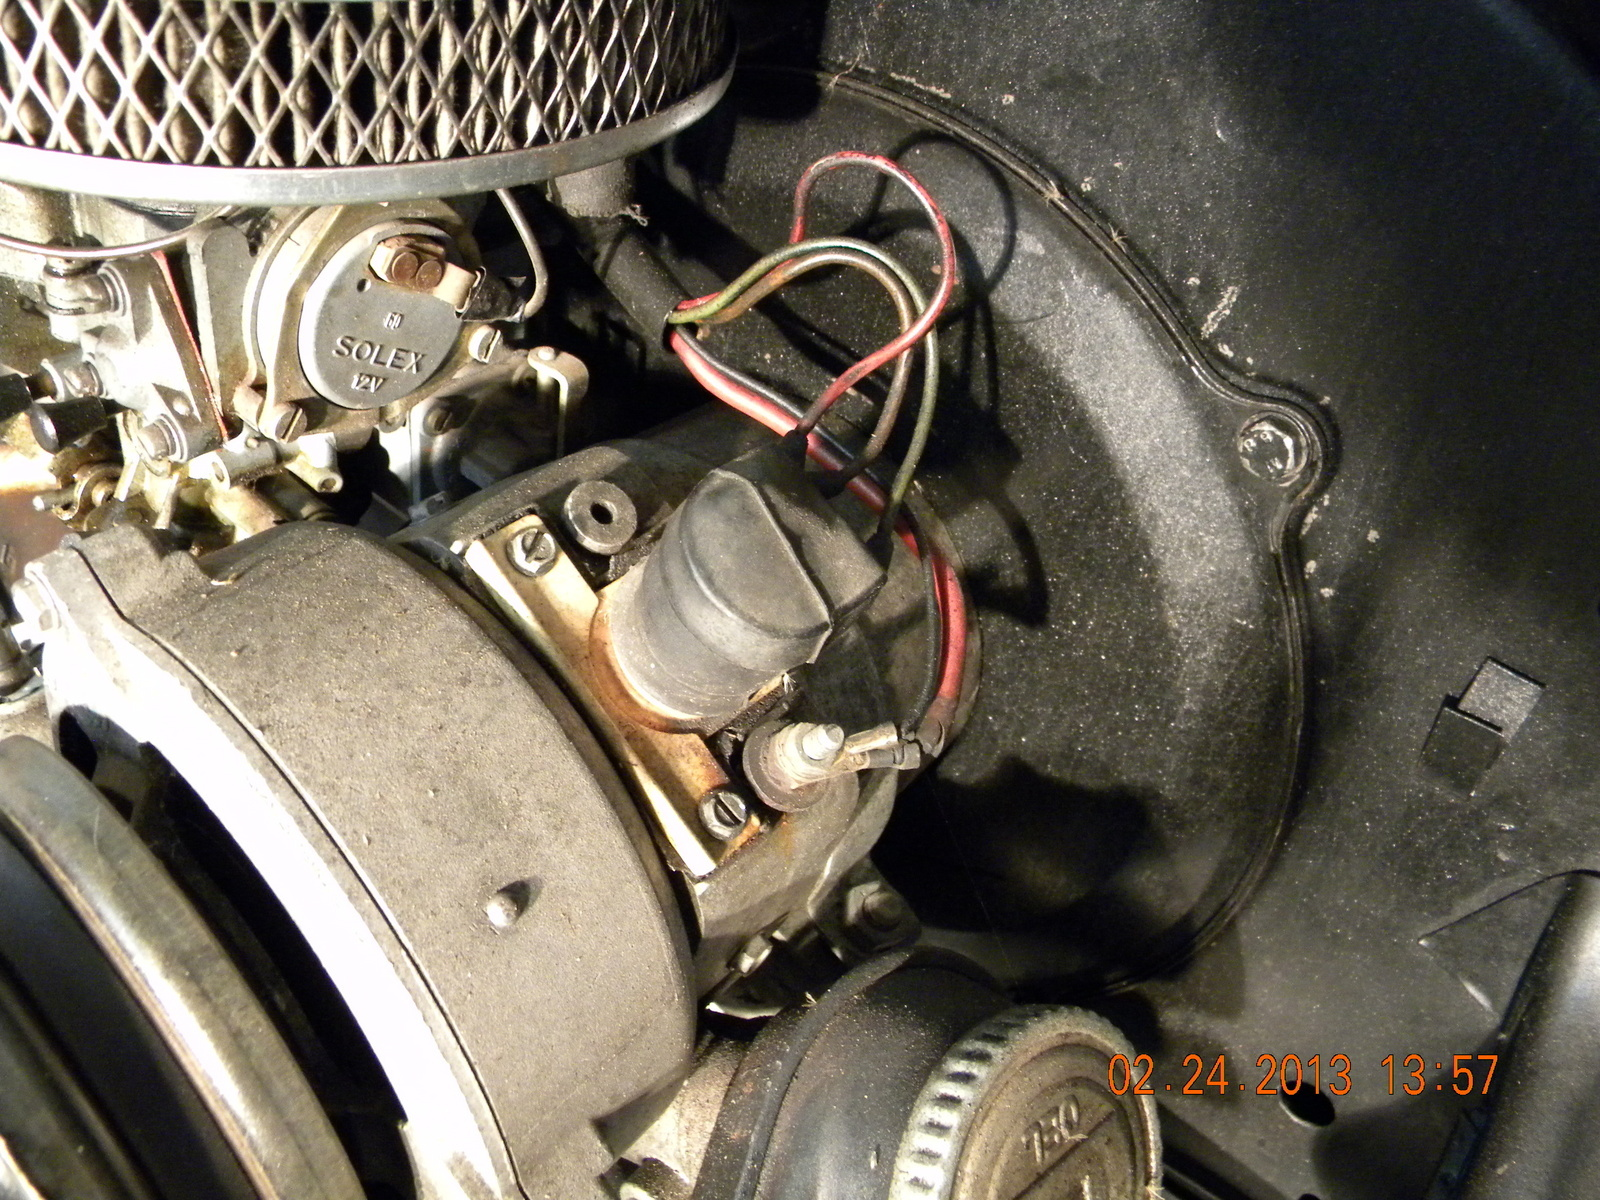 1974_volkswagen_beetle pic 8215095219041188070 1600x1200 volkswagen beetle questions try this again i have a 1974 beetle vw generator to alternator conversion wiring diagram at crackthecode.co